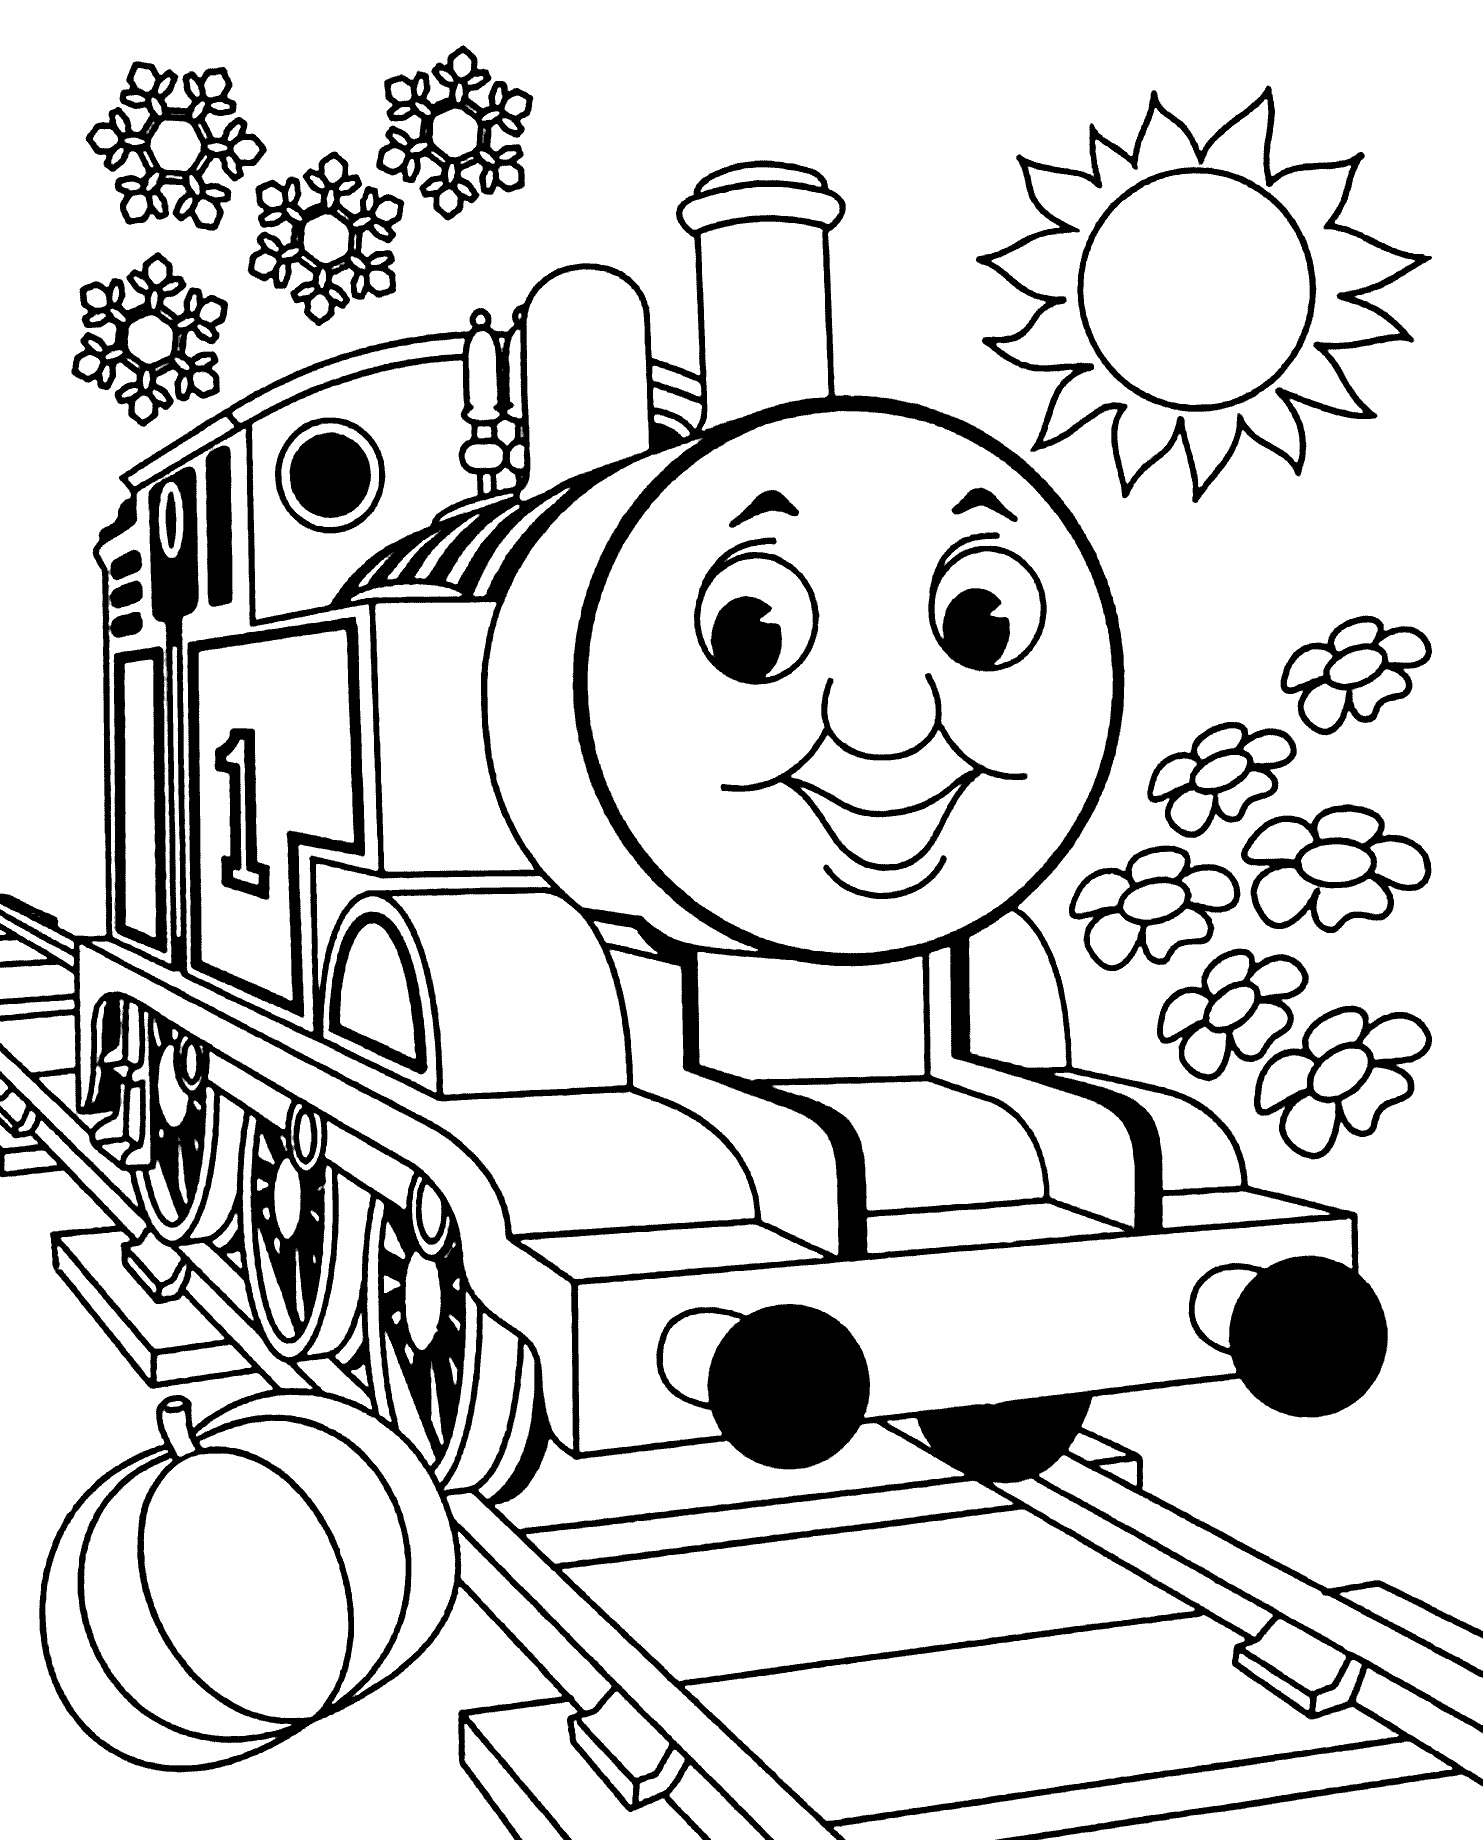 Thomas tank engine colouring in page